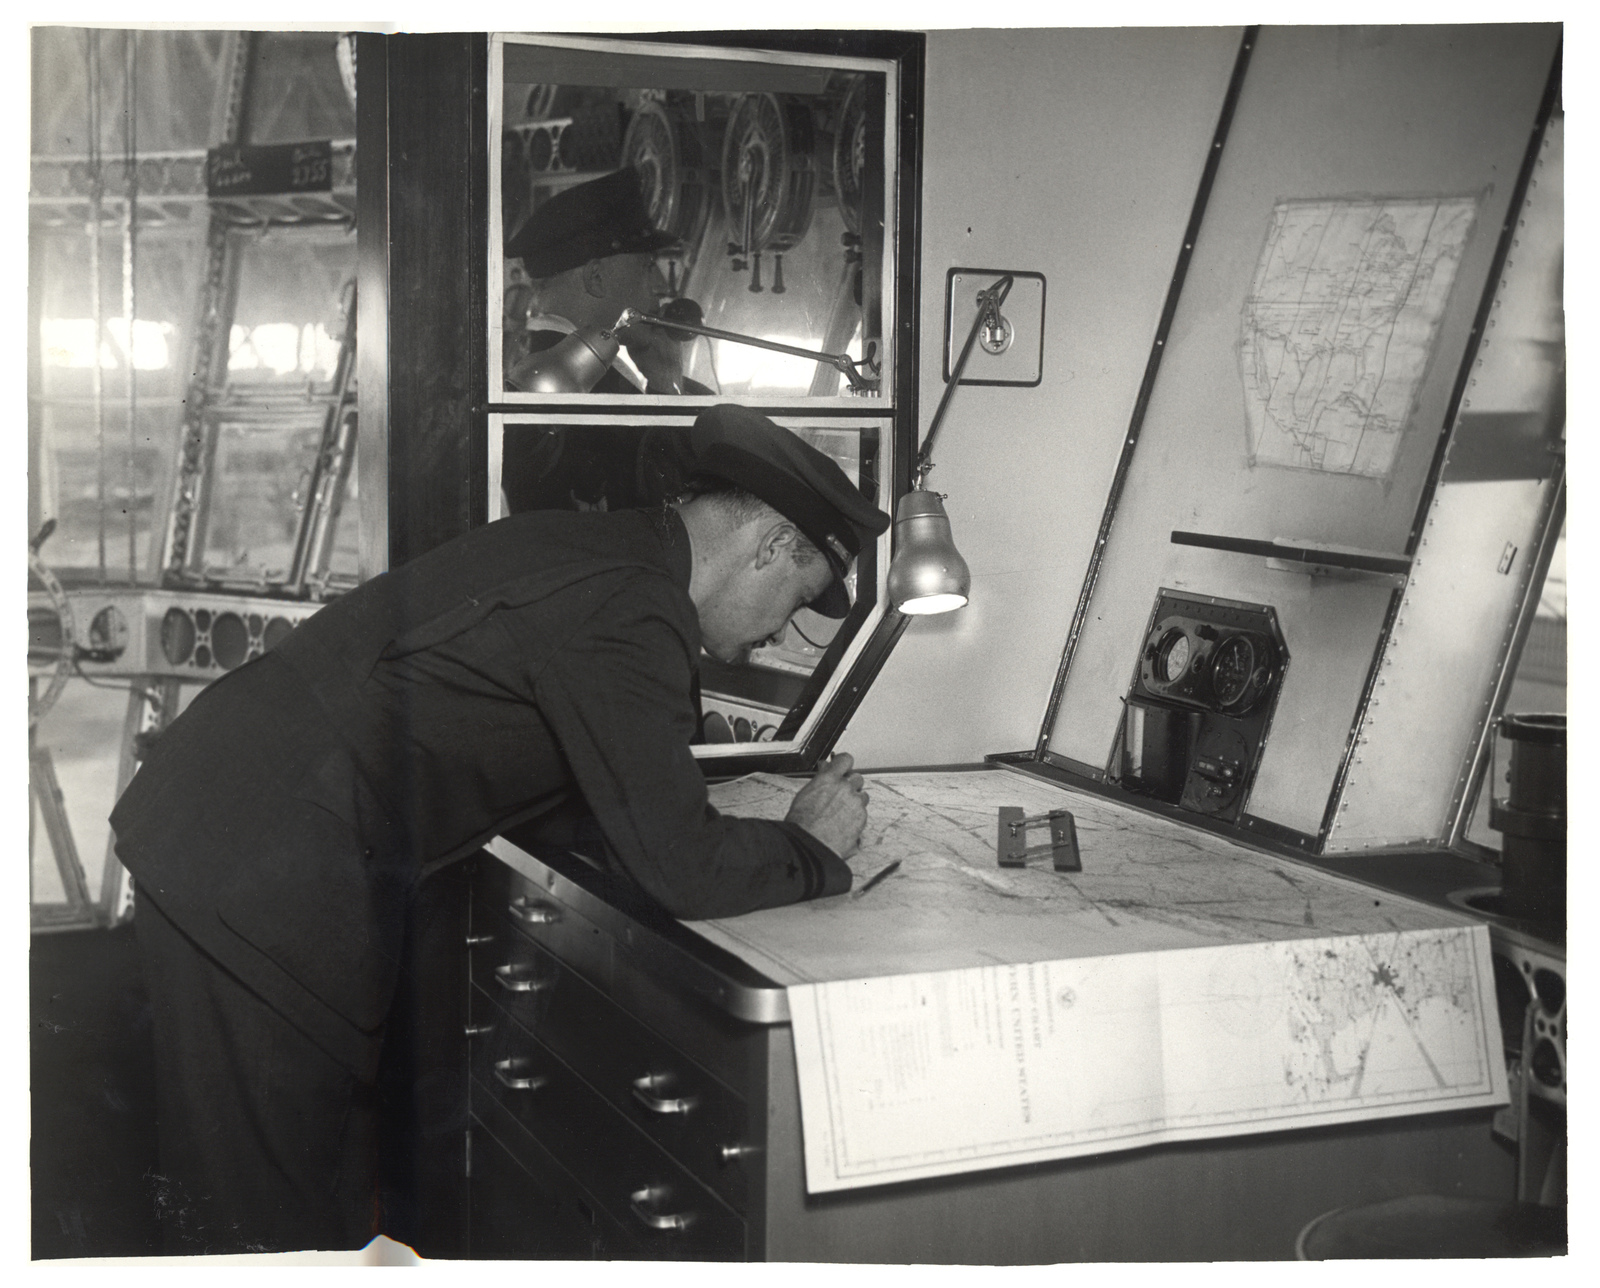 Photograph of Navigation Room in a Dirigible